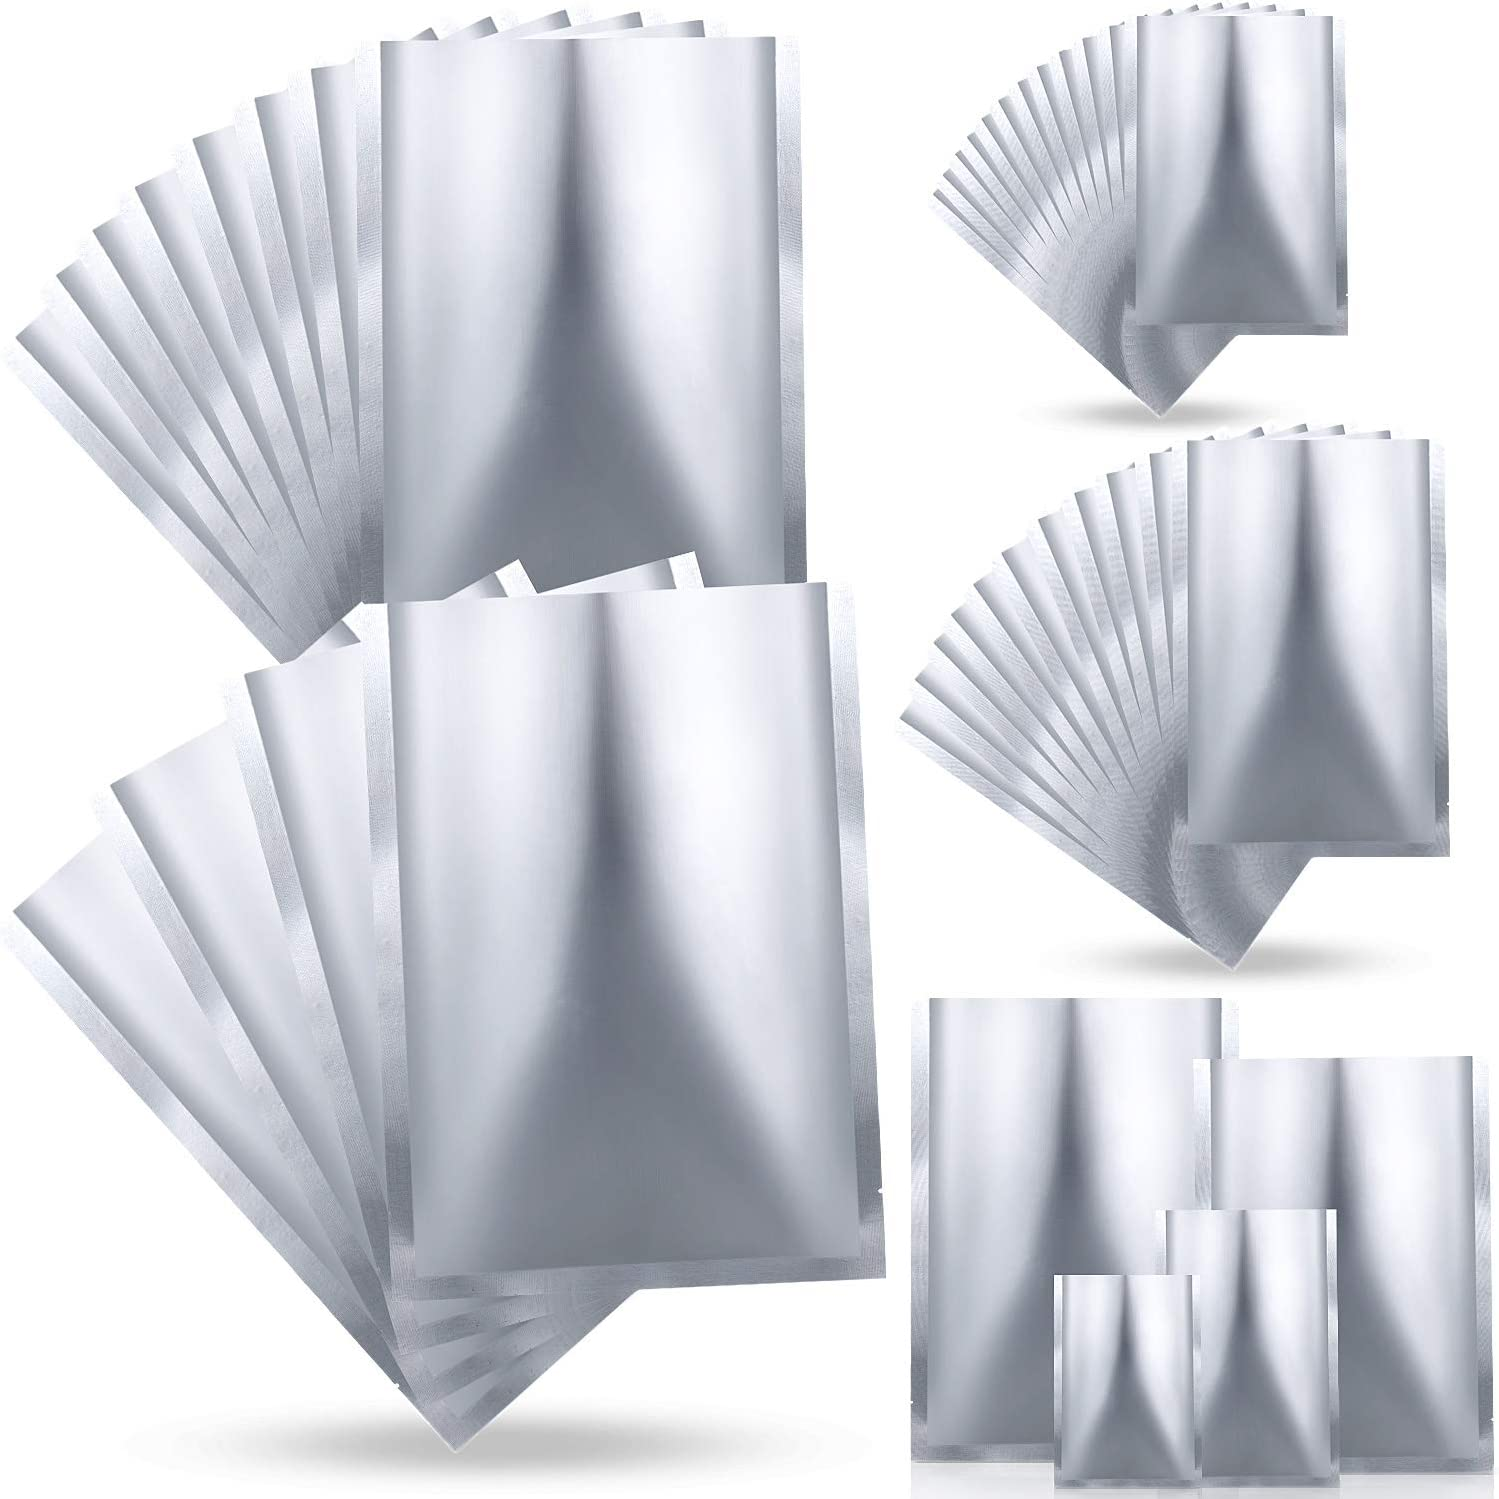 48 Pieces 4 Sizes Mylar Aluminum Foil Bags, Metallic Mylar Foil Flat Heat Sealable Bags Storage Bags Pouch for Food Coffee Tea Beans (6 x 9 inch, 8 x 12 inch, 12 x 17 inch, 14 x 20 inch)